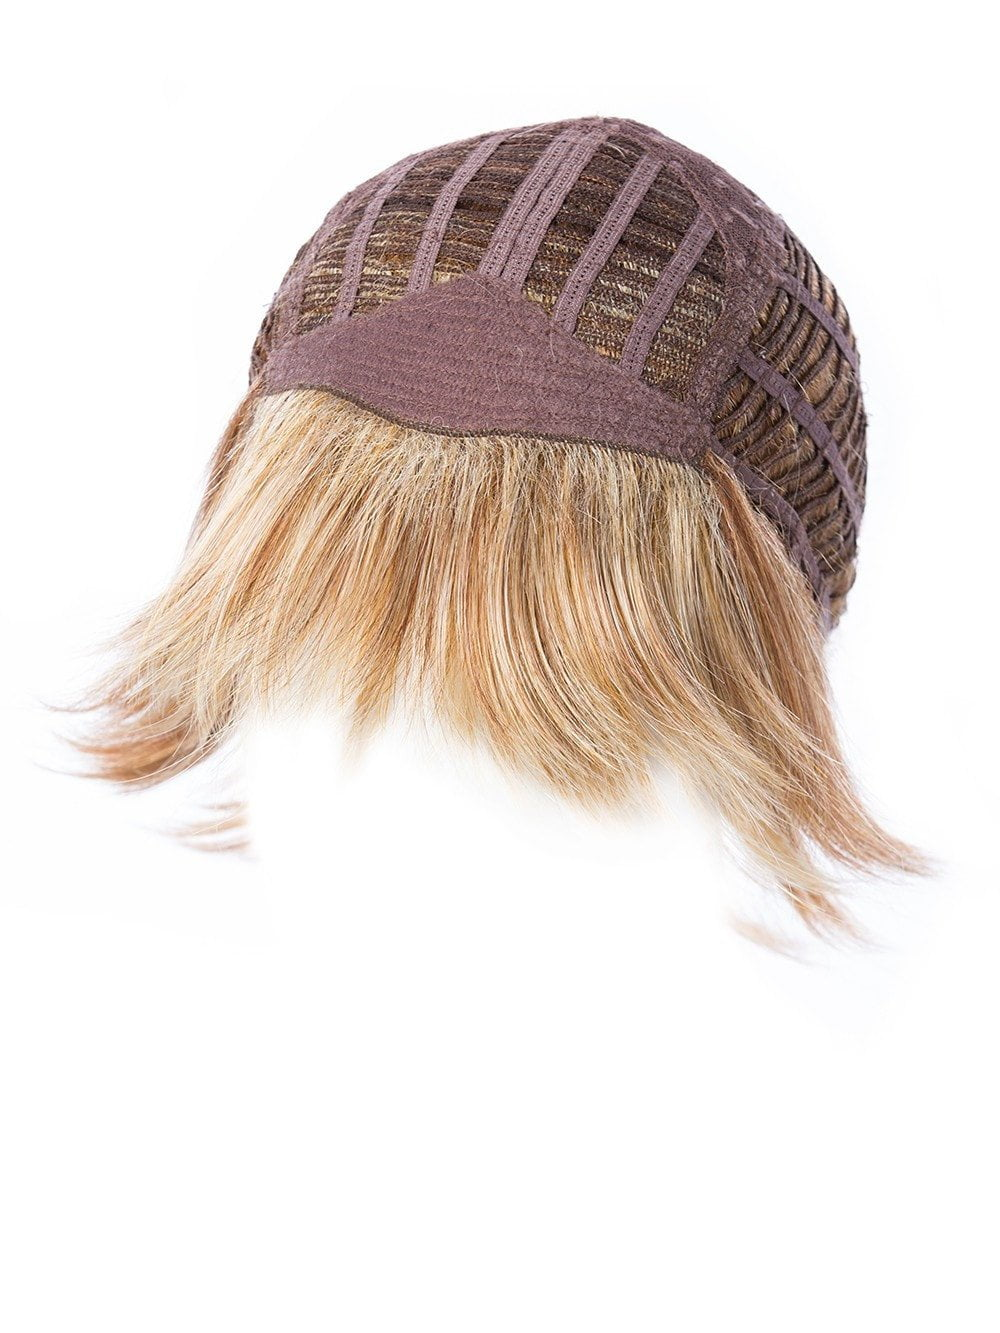 Basic Cap, also known as a capless or traditional construction, has open wefting